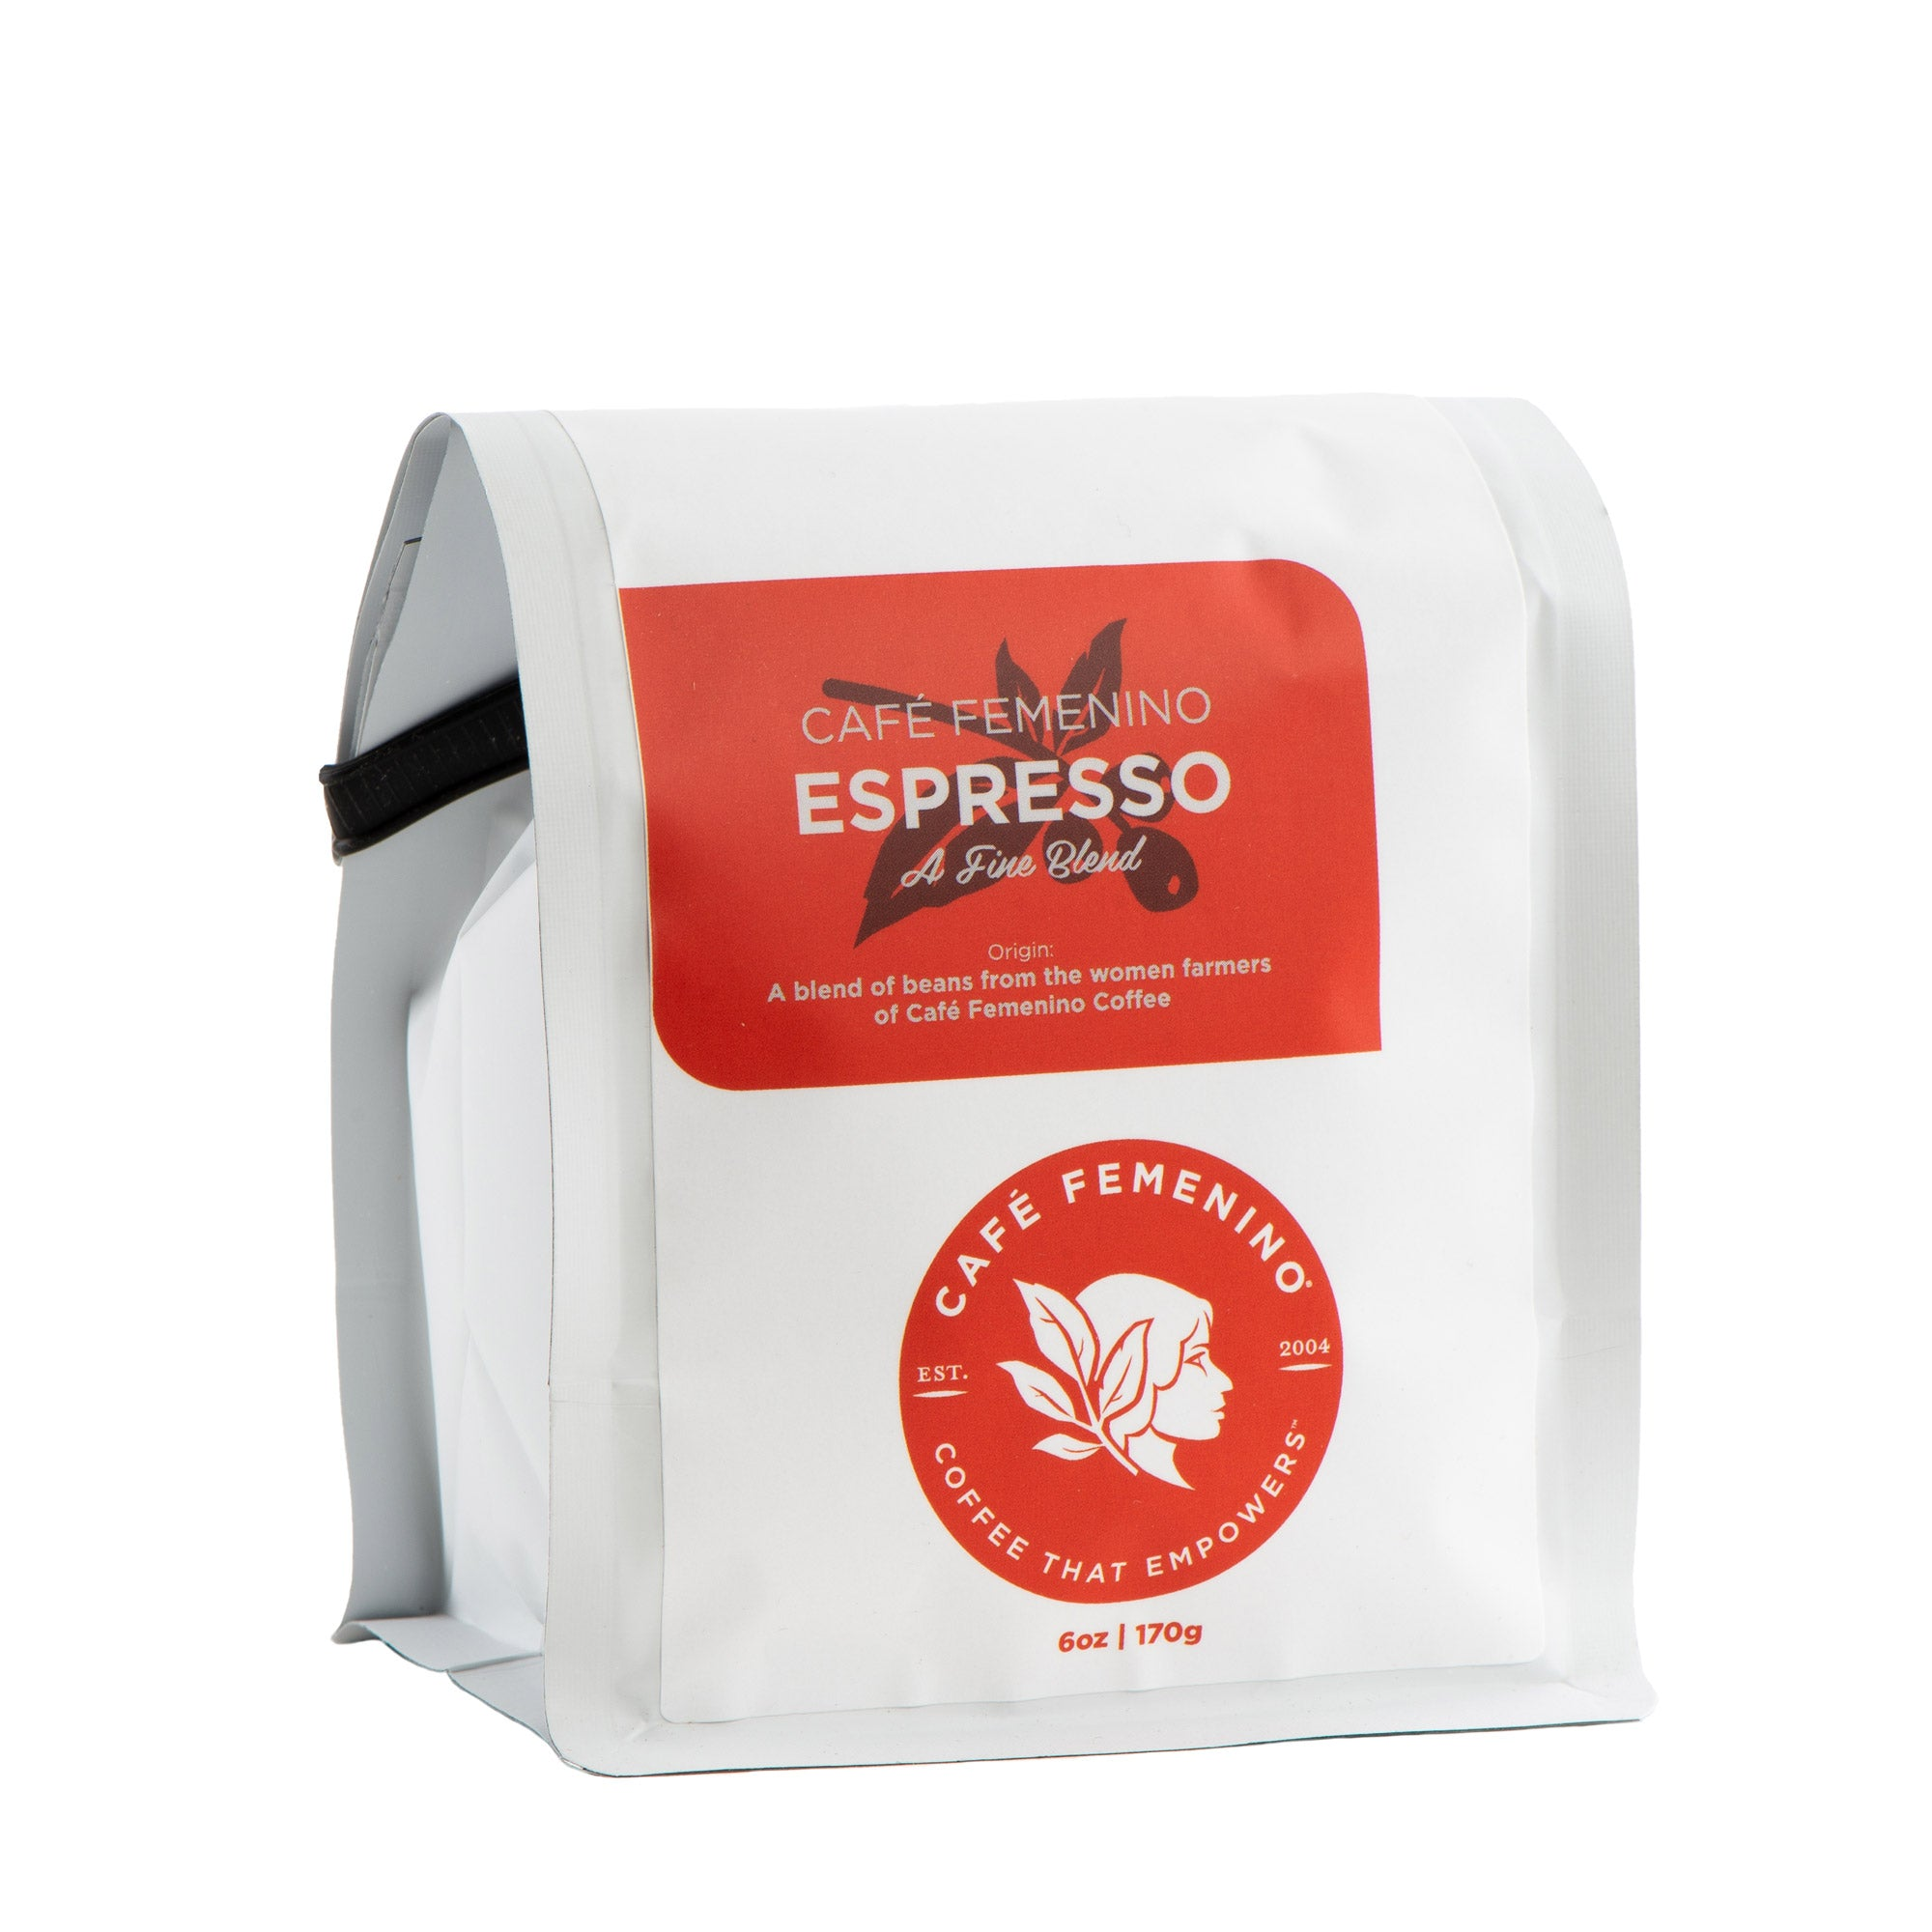 Café Femenino Espresso Mini Whole Bean Coffee